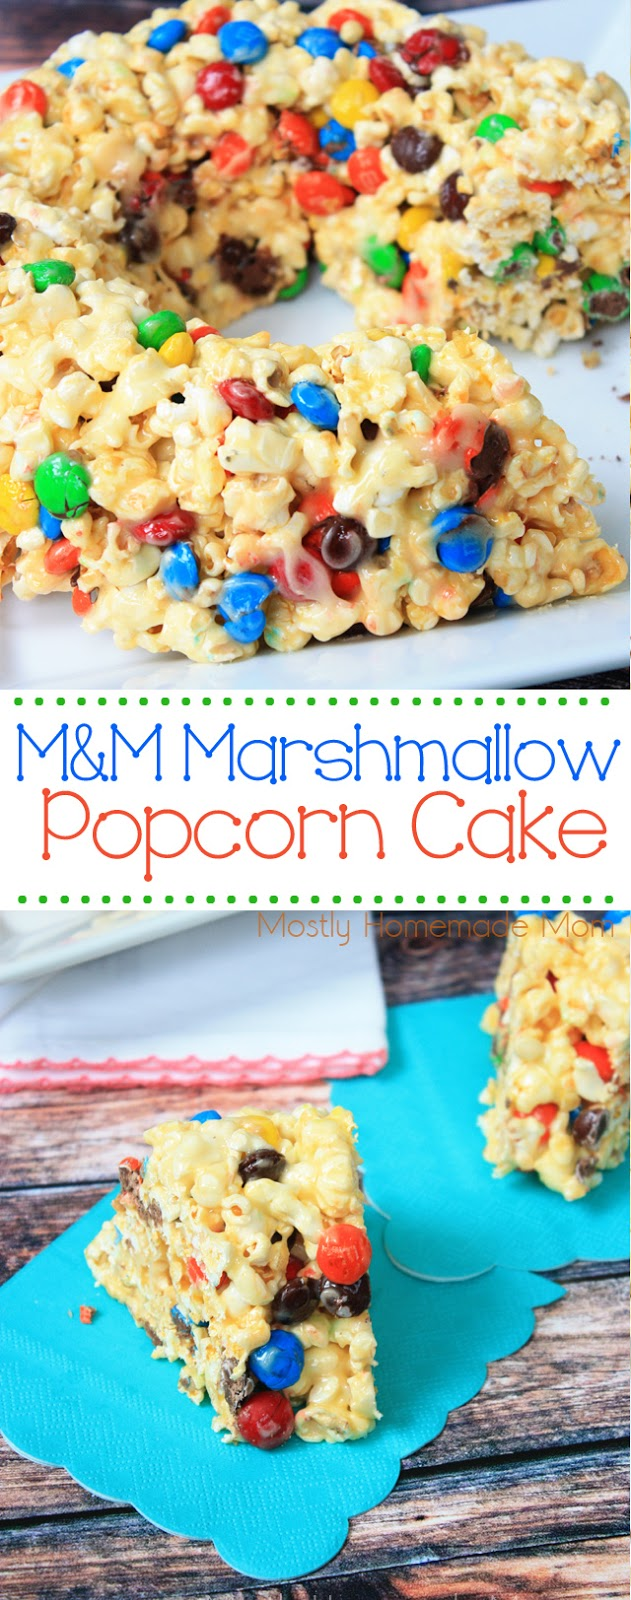 M&M Marshmallow Popcorn Cake with popcorn balls